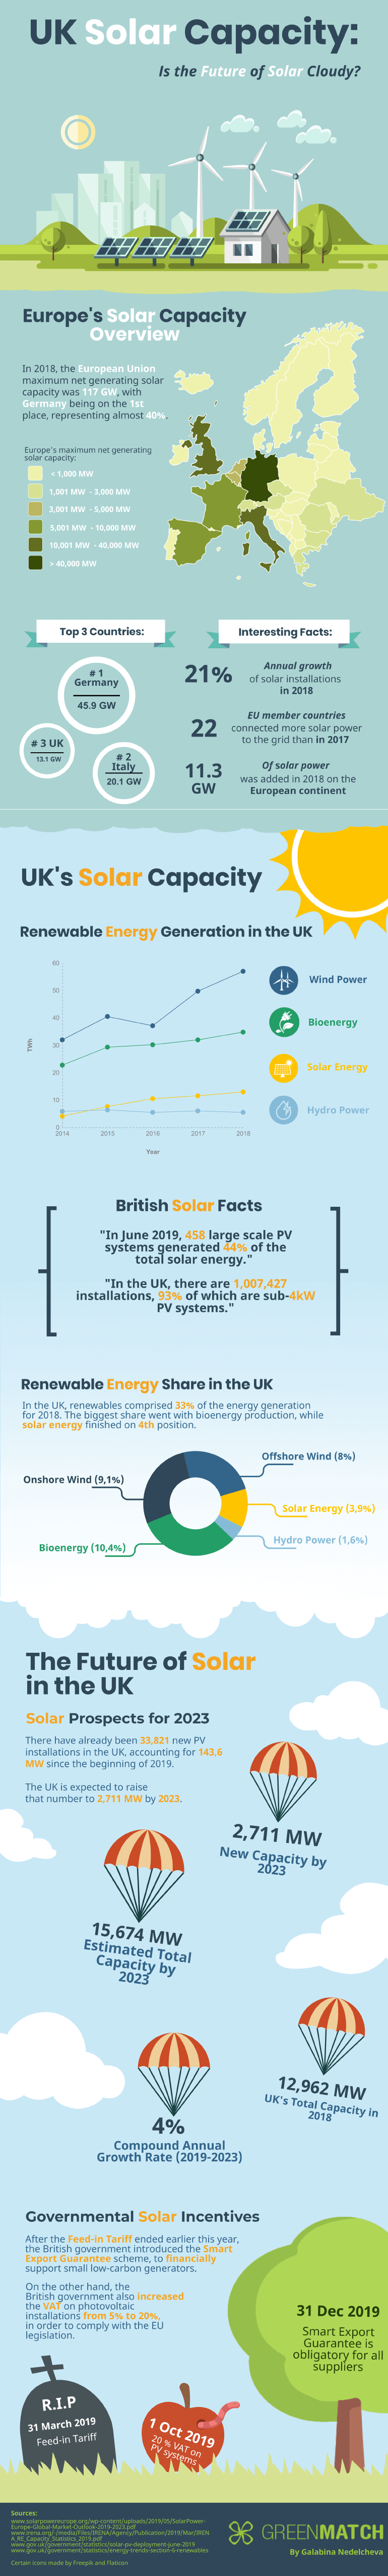 UK Solar Capacity Infographic